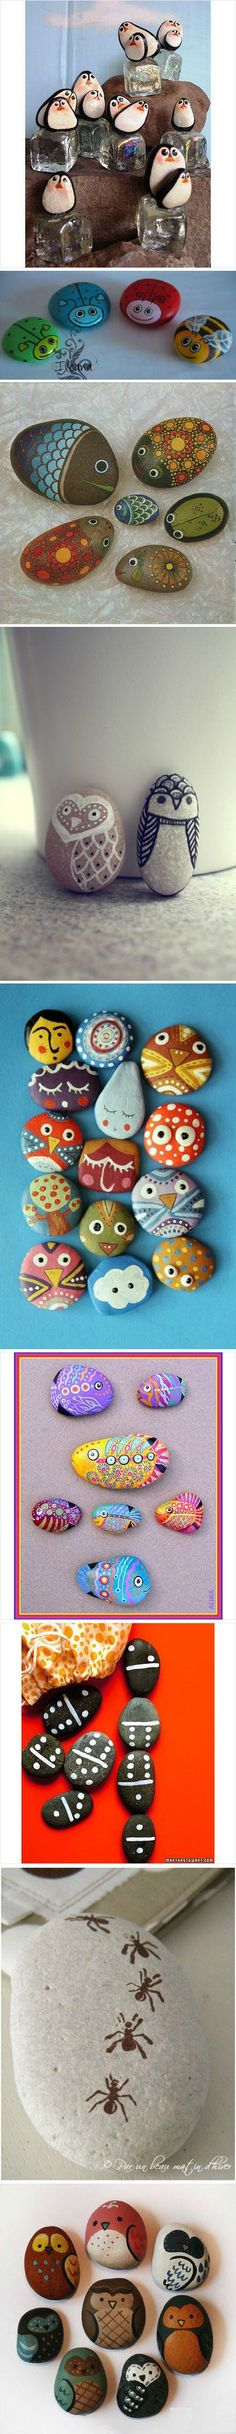 diy. have kids decorate rocks around flower bed & use some for garden row markers.